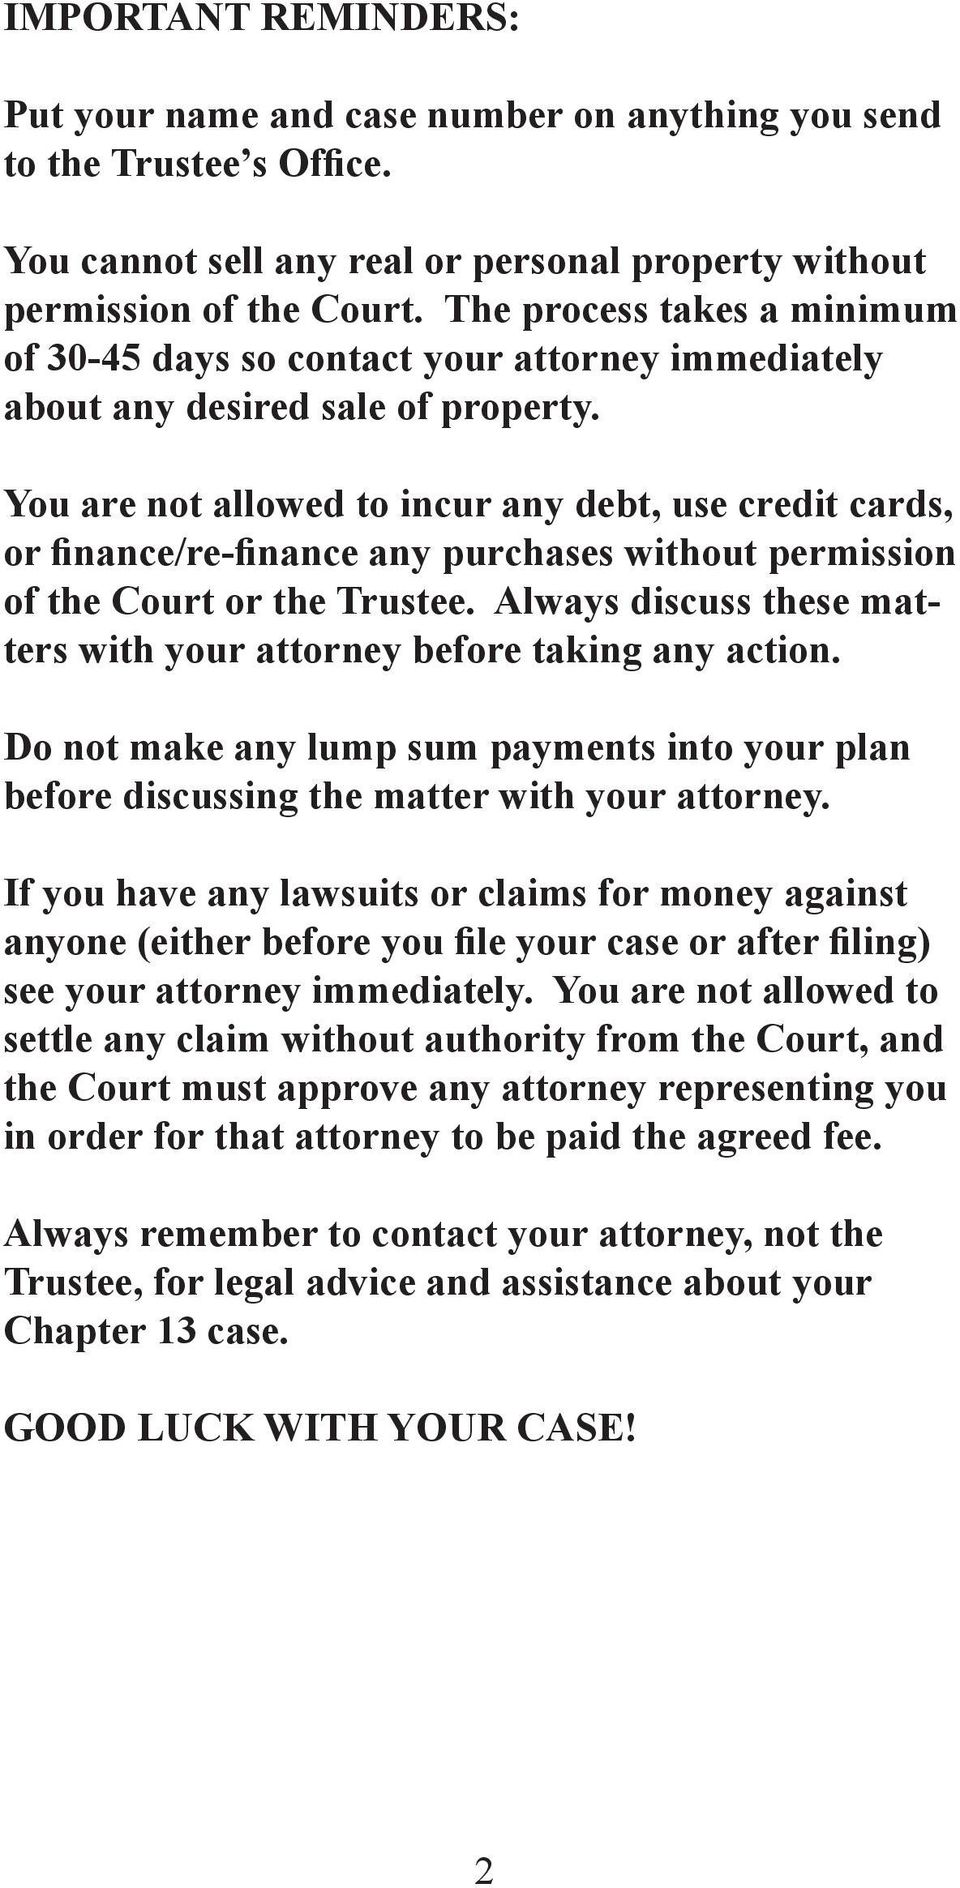 You are not allowed to incur any debt, use credit cards, or finance/re-finance any purchases without permission of the Court or the Trustee.